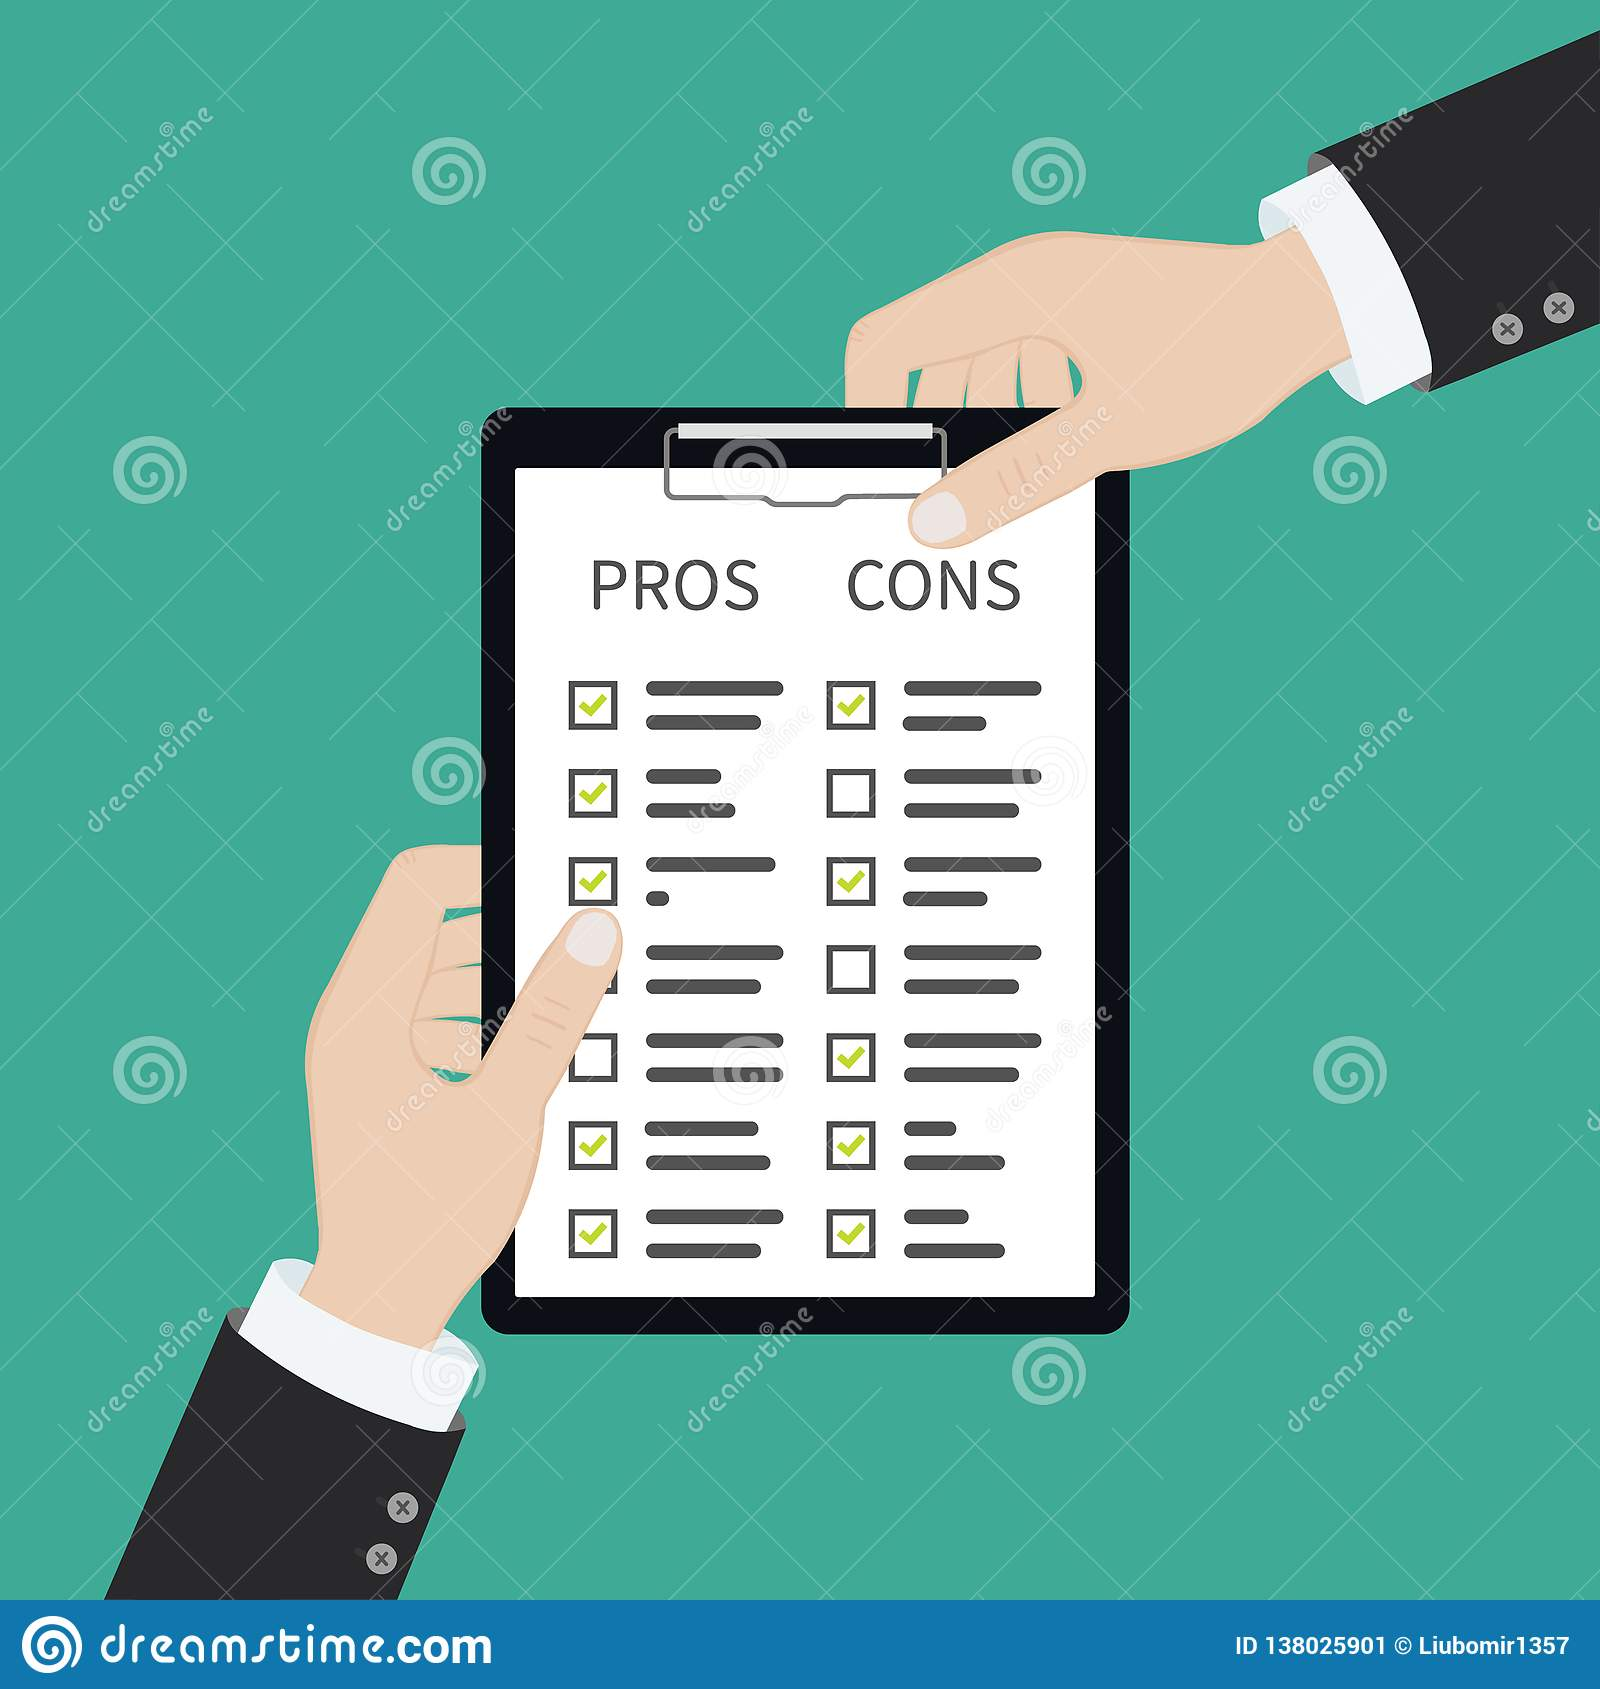 In Hand Pros Cons Concept On Decision Making Process